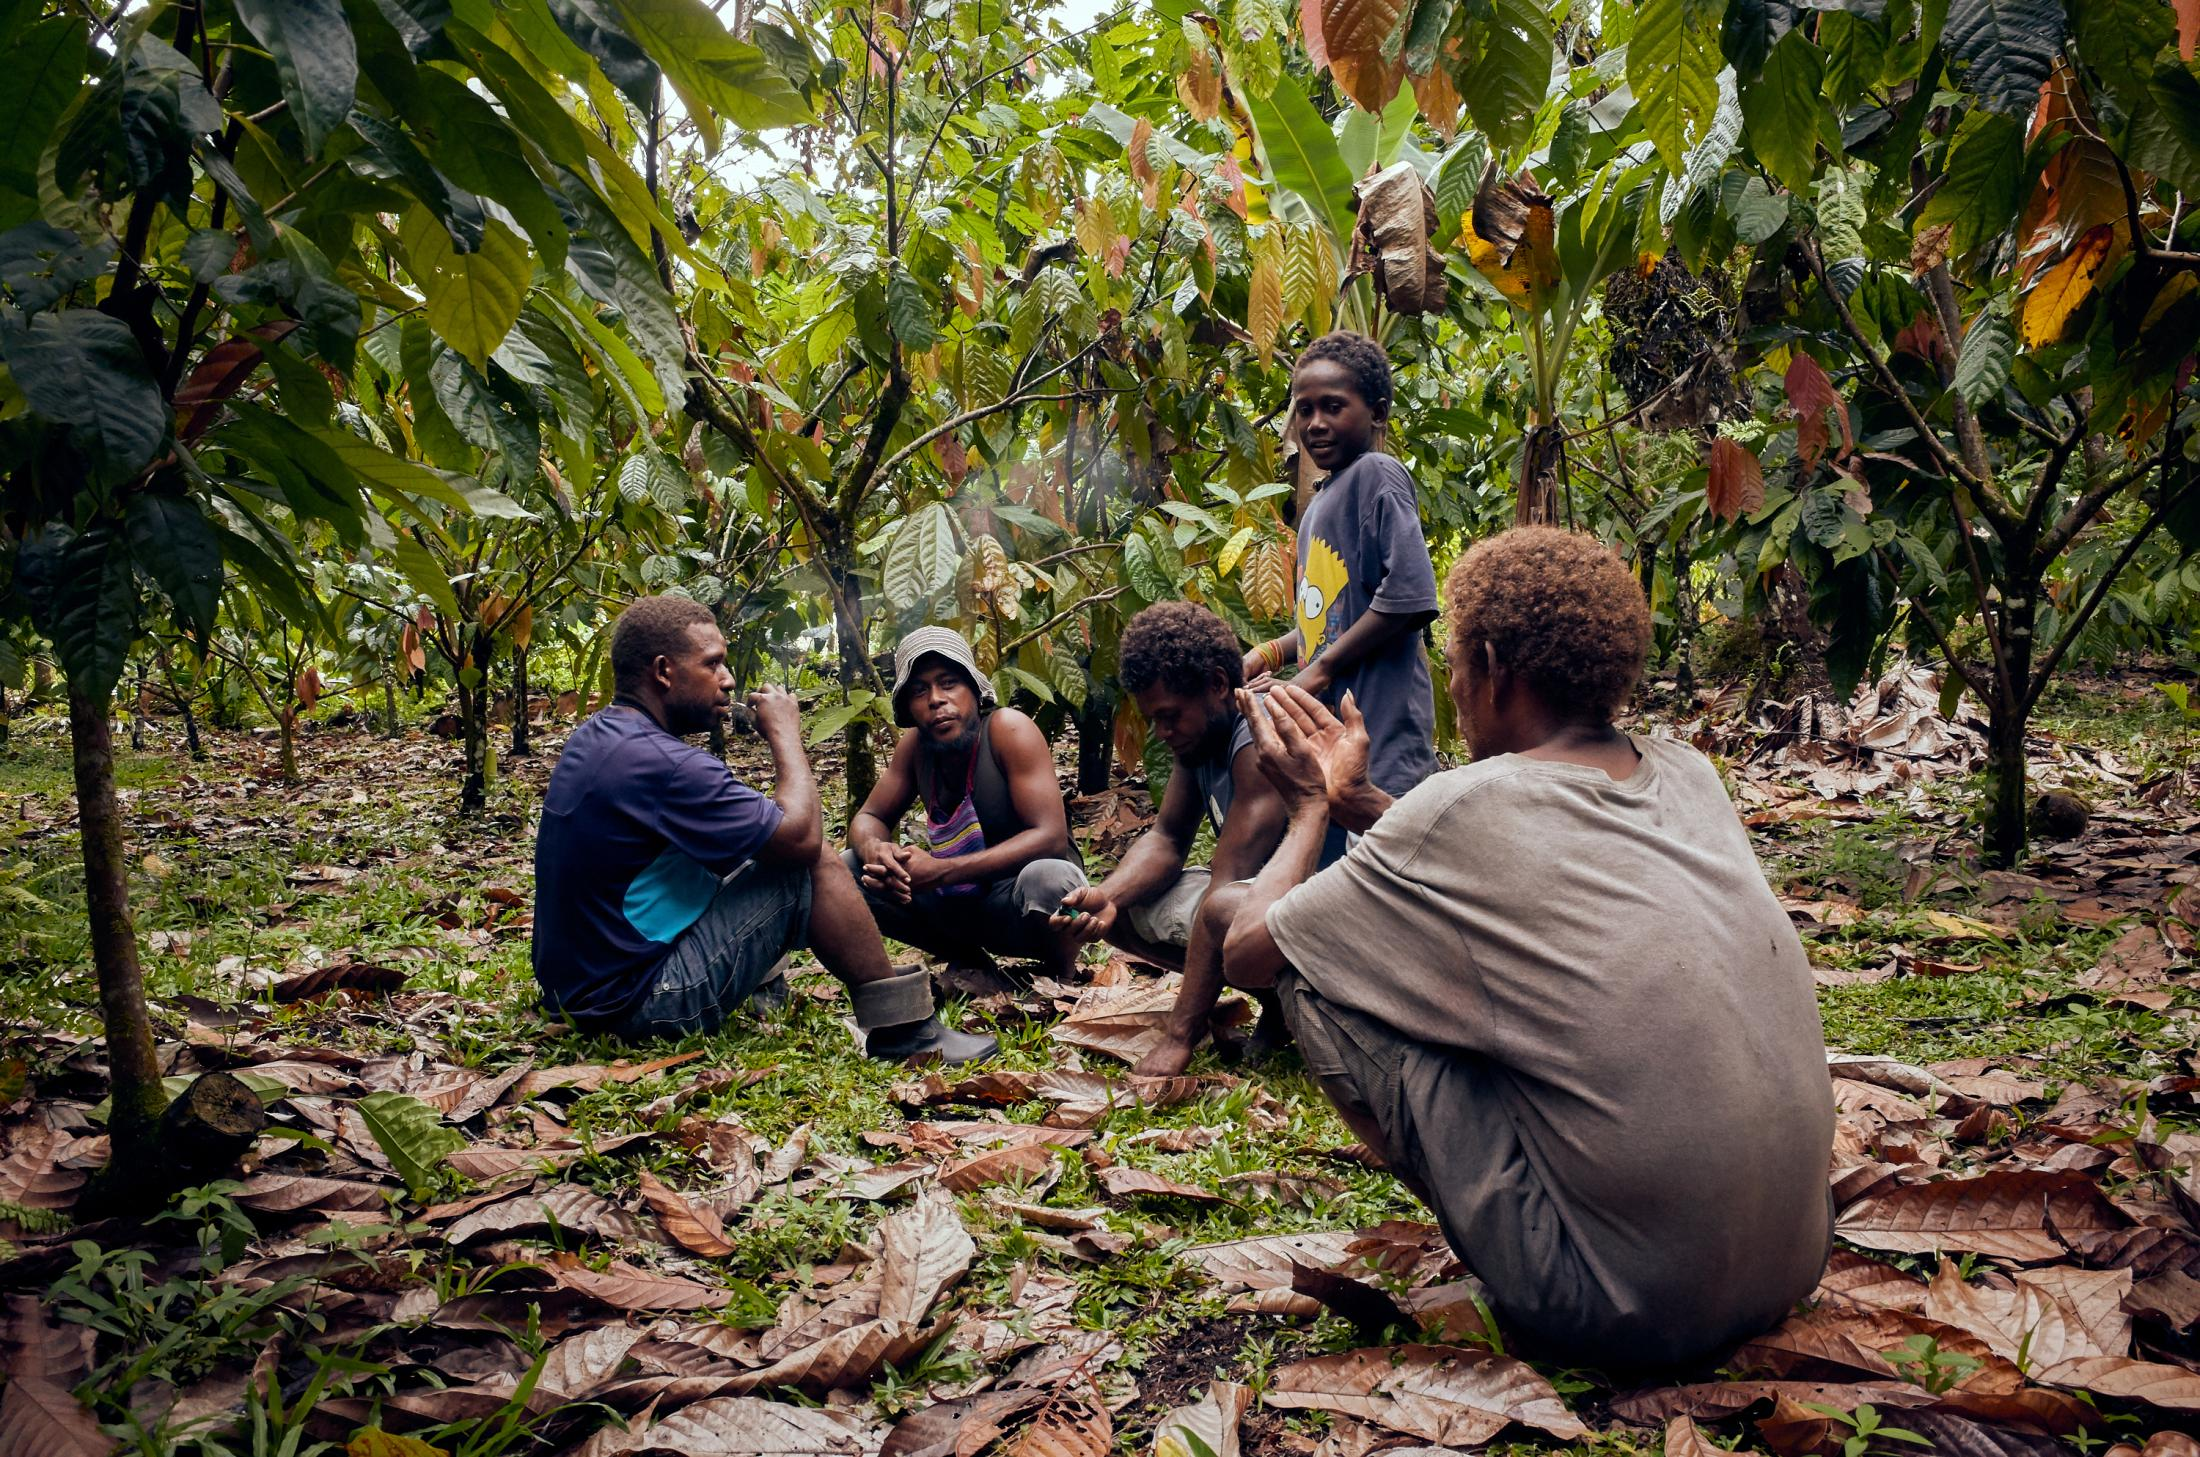 A group of cocoa farmers take a rest from work in the West Baeleta region of Malaita, Solomon Islands.